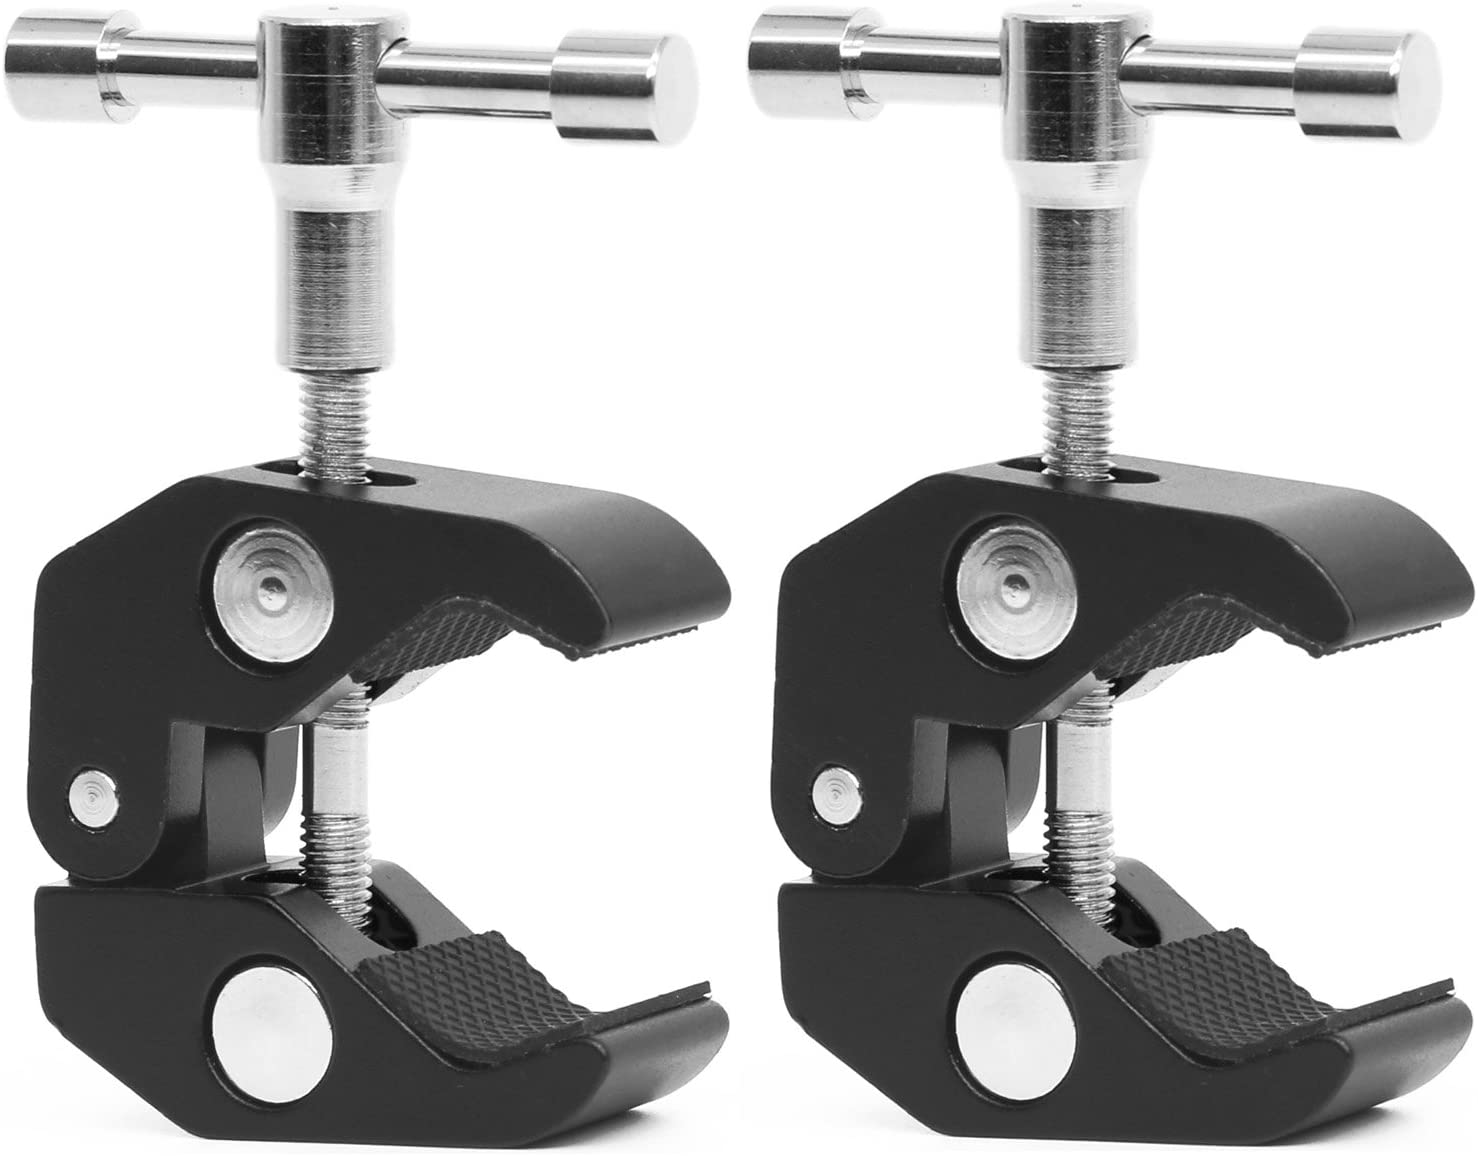 "Anwenk 2Pack Super Clamp w/ 1/4""-20 and 3/8""-16 Thread Camera Clamp Mount Crab Clamp for Cameras, Lights, Umbrellas, Hooks, Shelves, Plate Glass, Cross Bars,Photo Accessories and More"